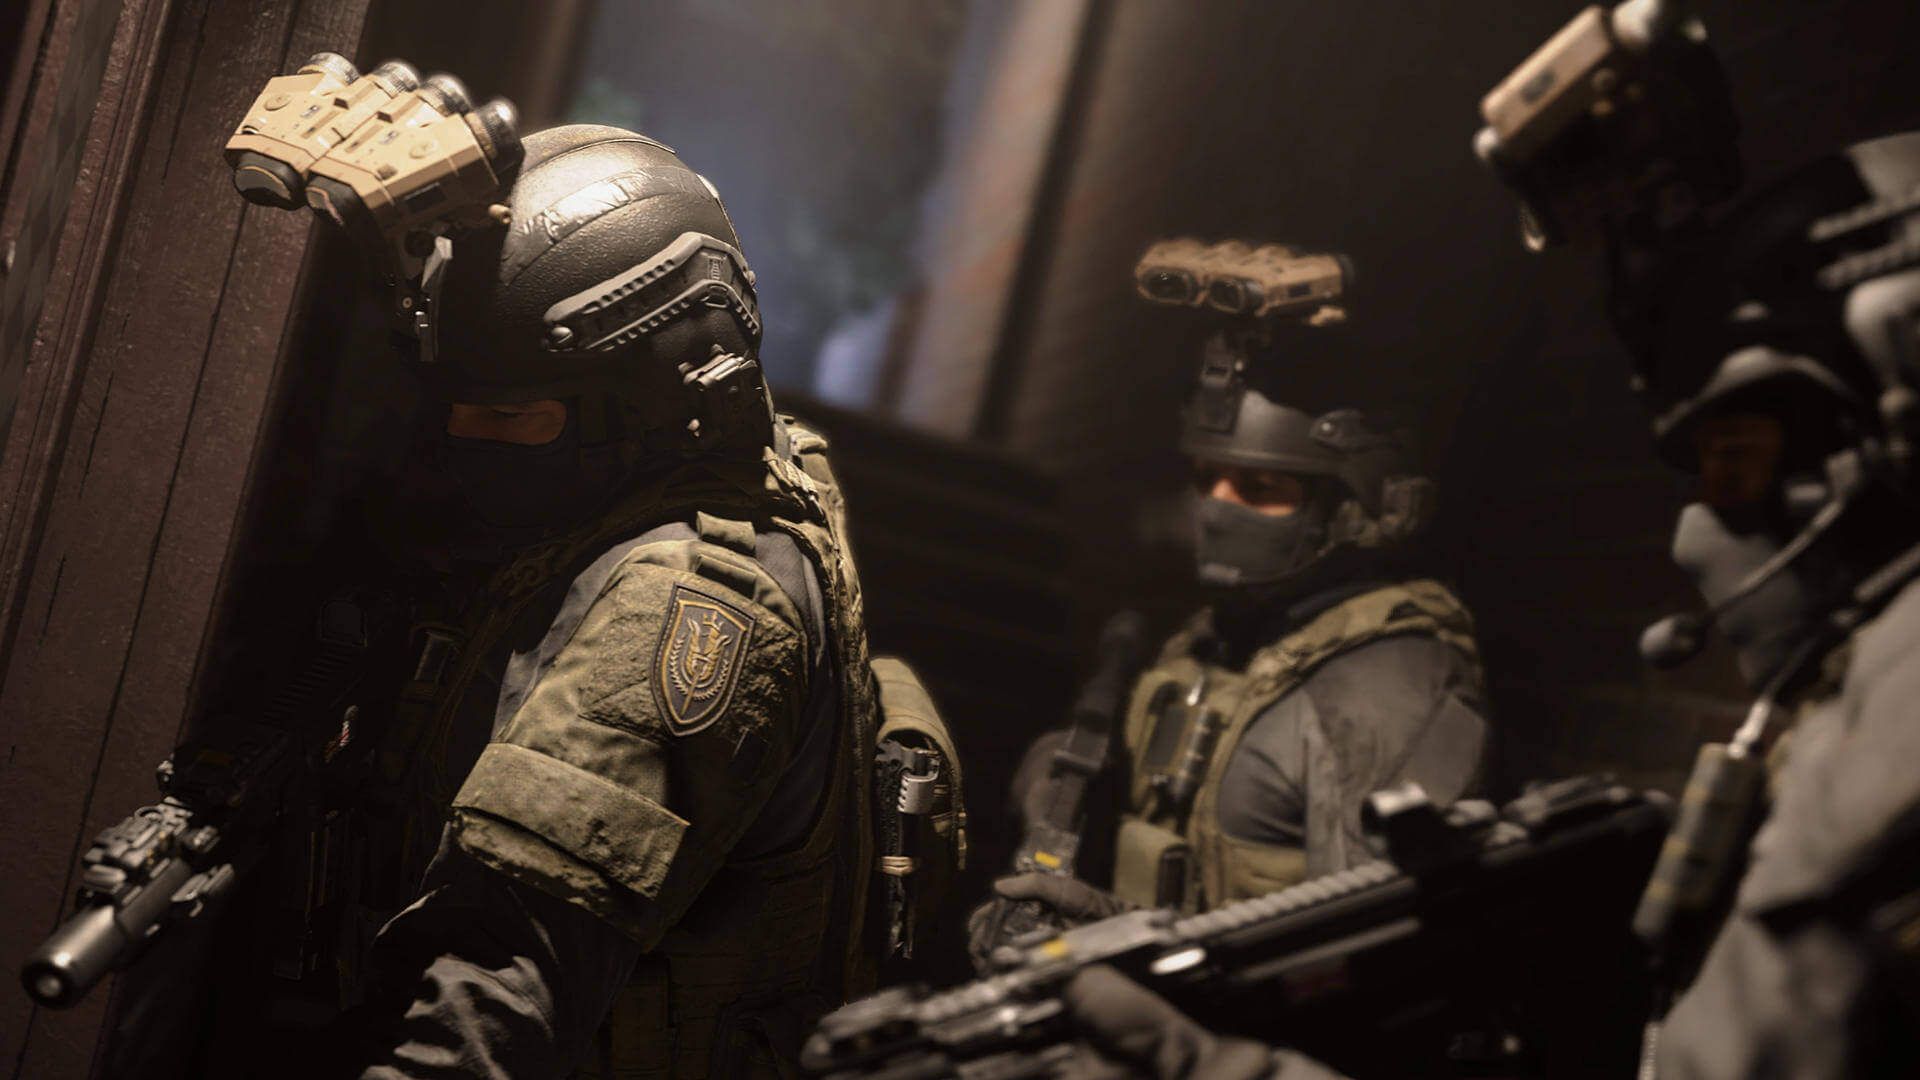 Call of Duty: Modern Warfare raked in over $600 million on its opening weekend